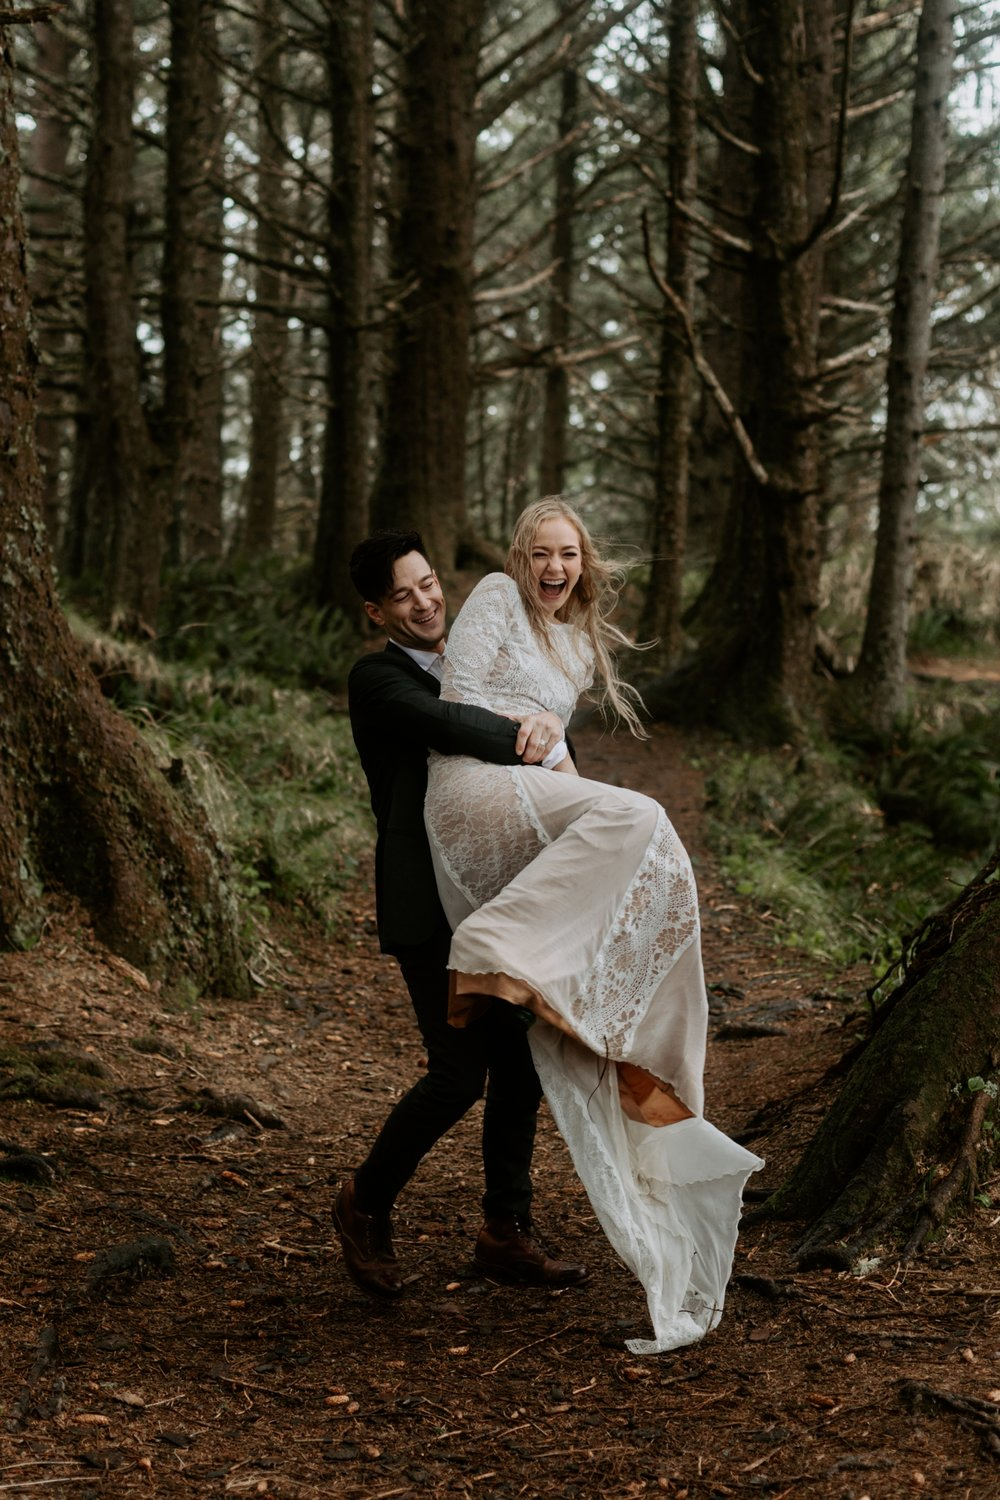 pnw-adventure-wedding-photographer-2018-05-02_0066.jpg